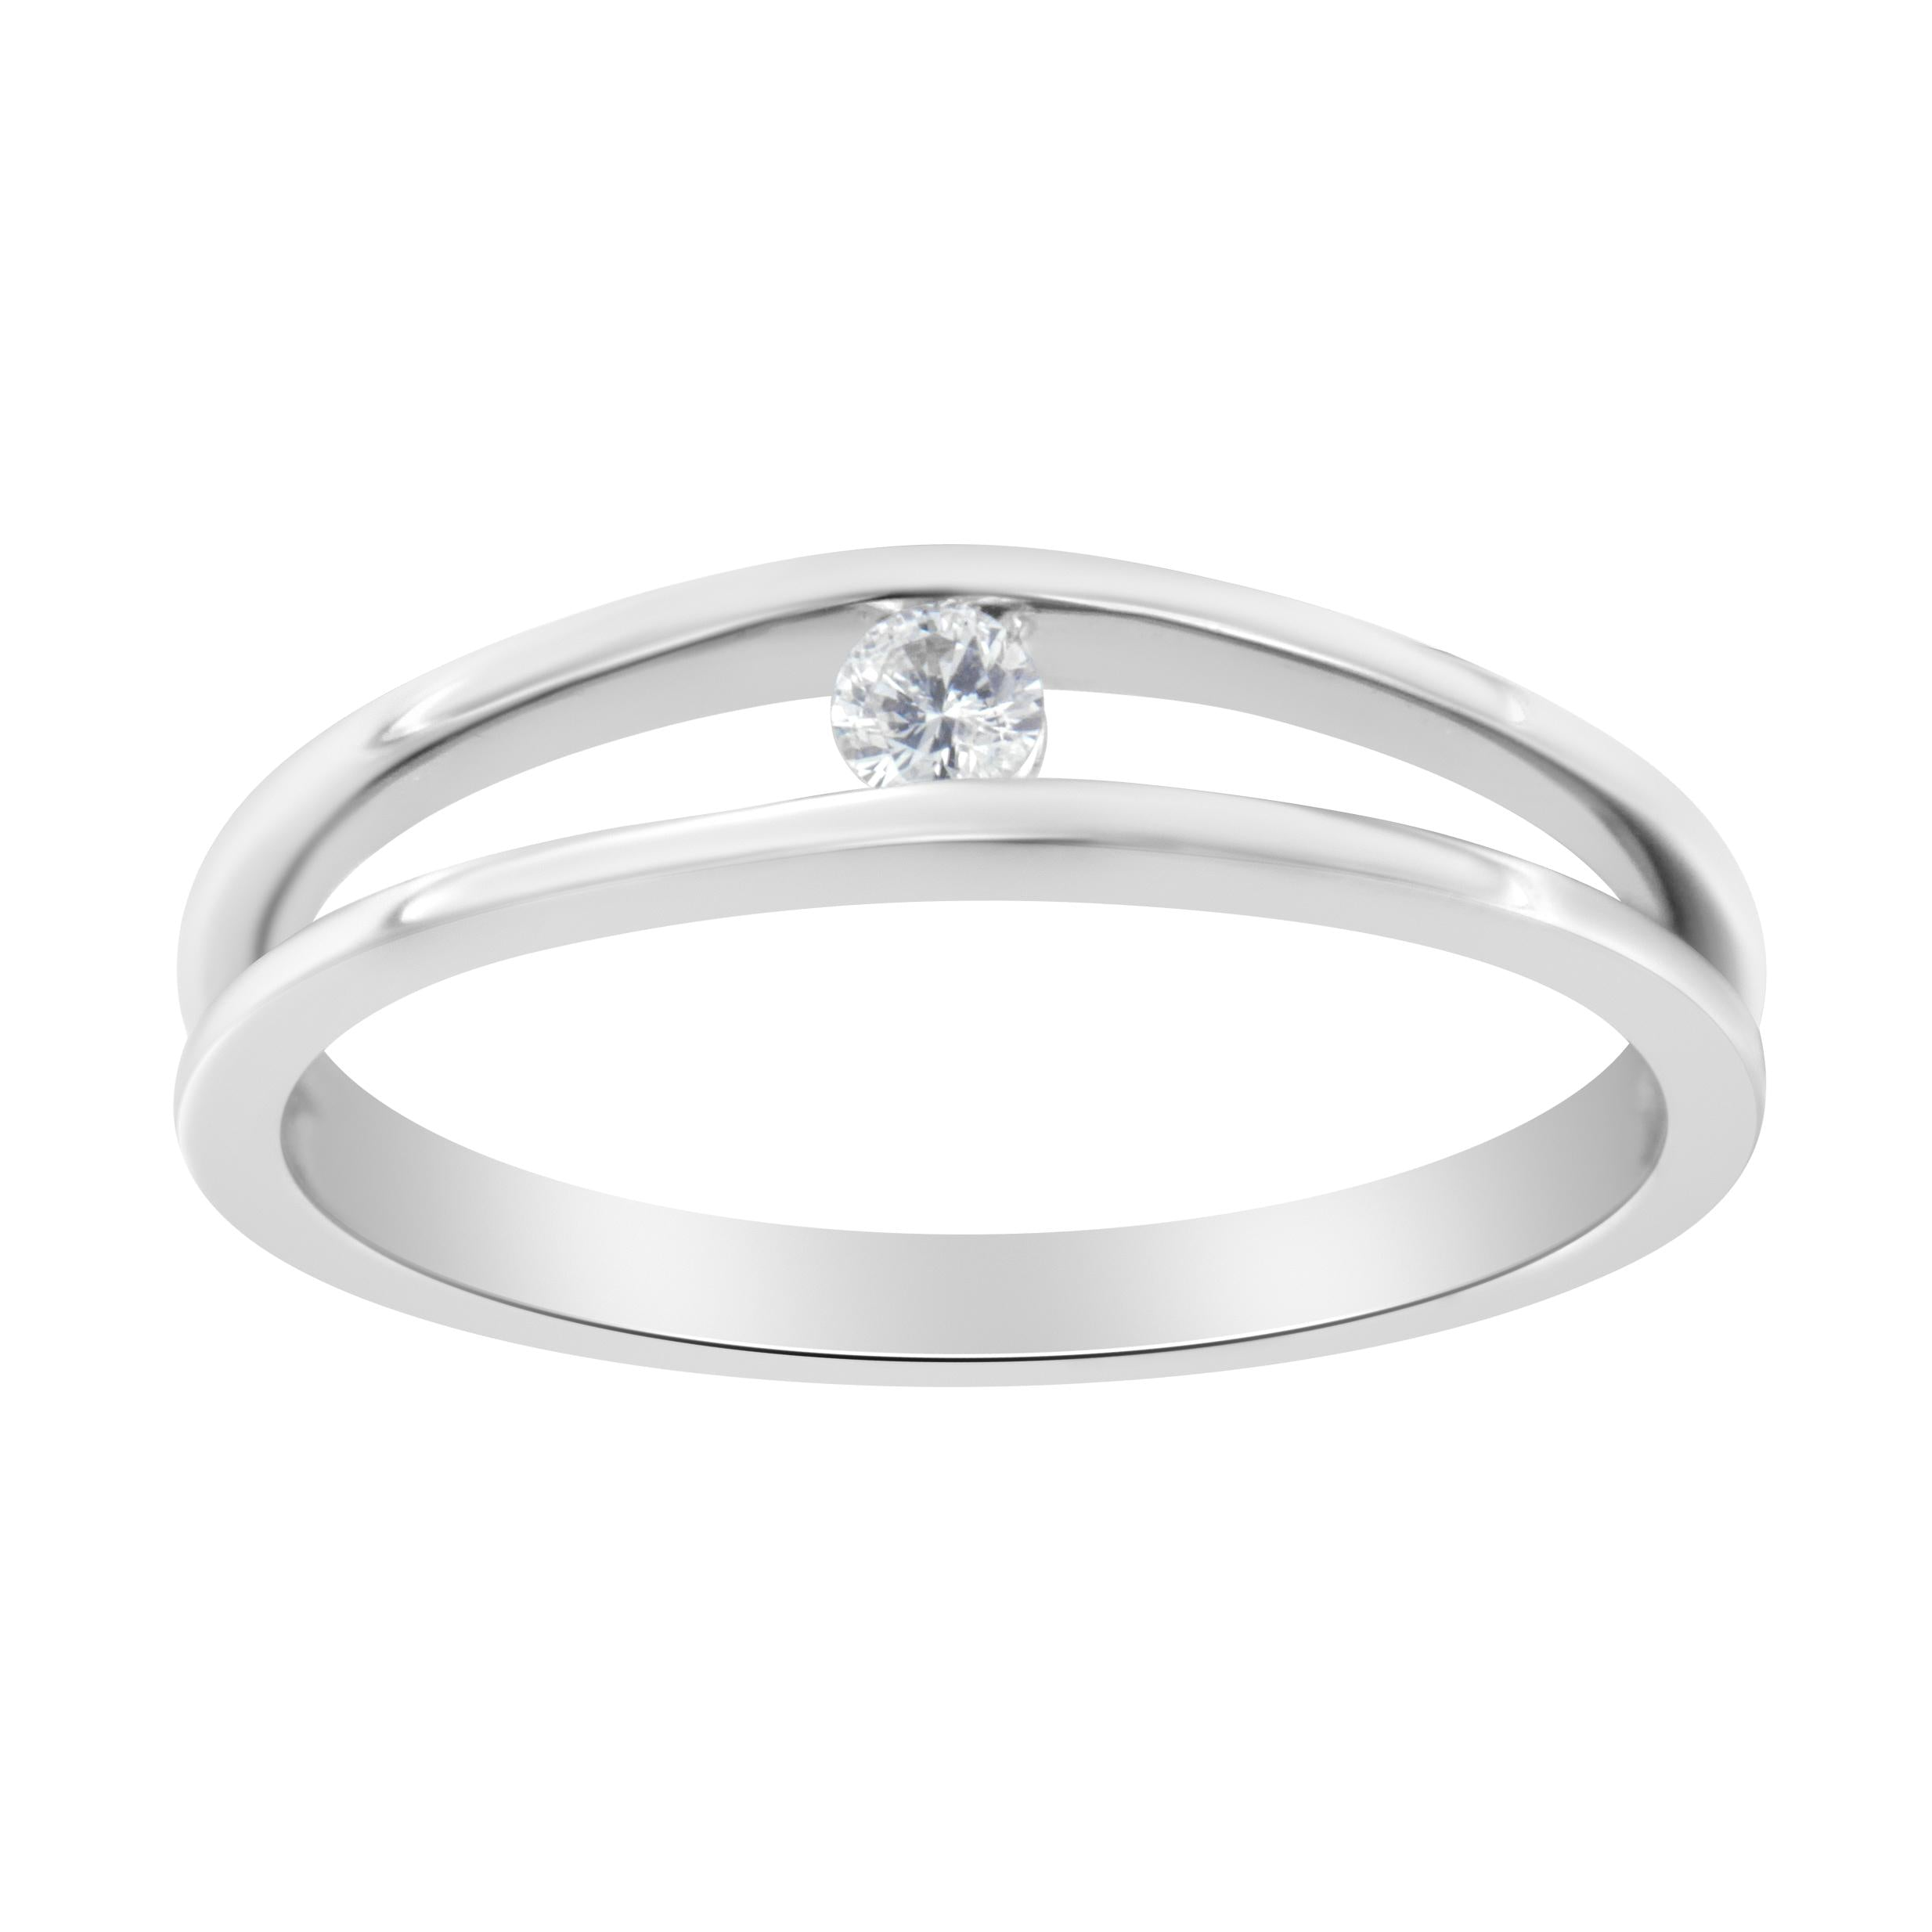 10K White Gold 1/10ct TDW Diamond Promise Ring (H-I, I1-I2)